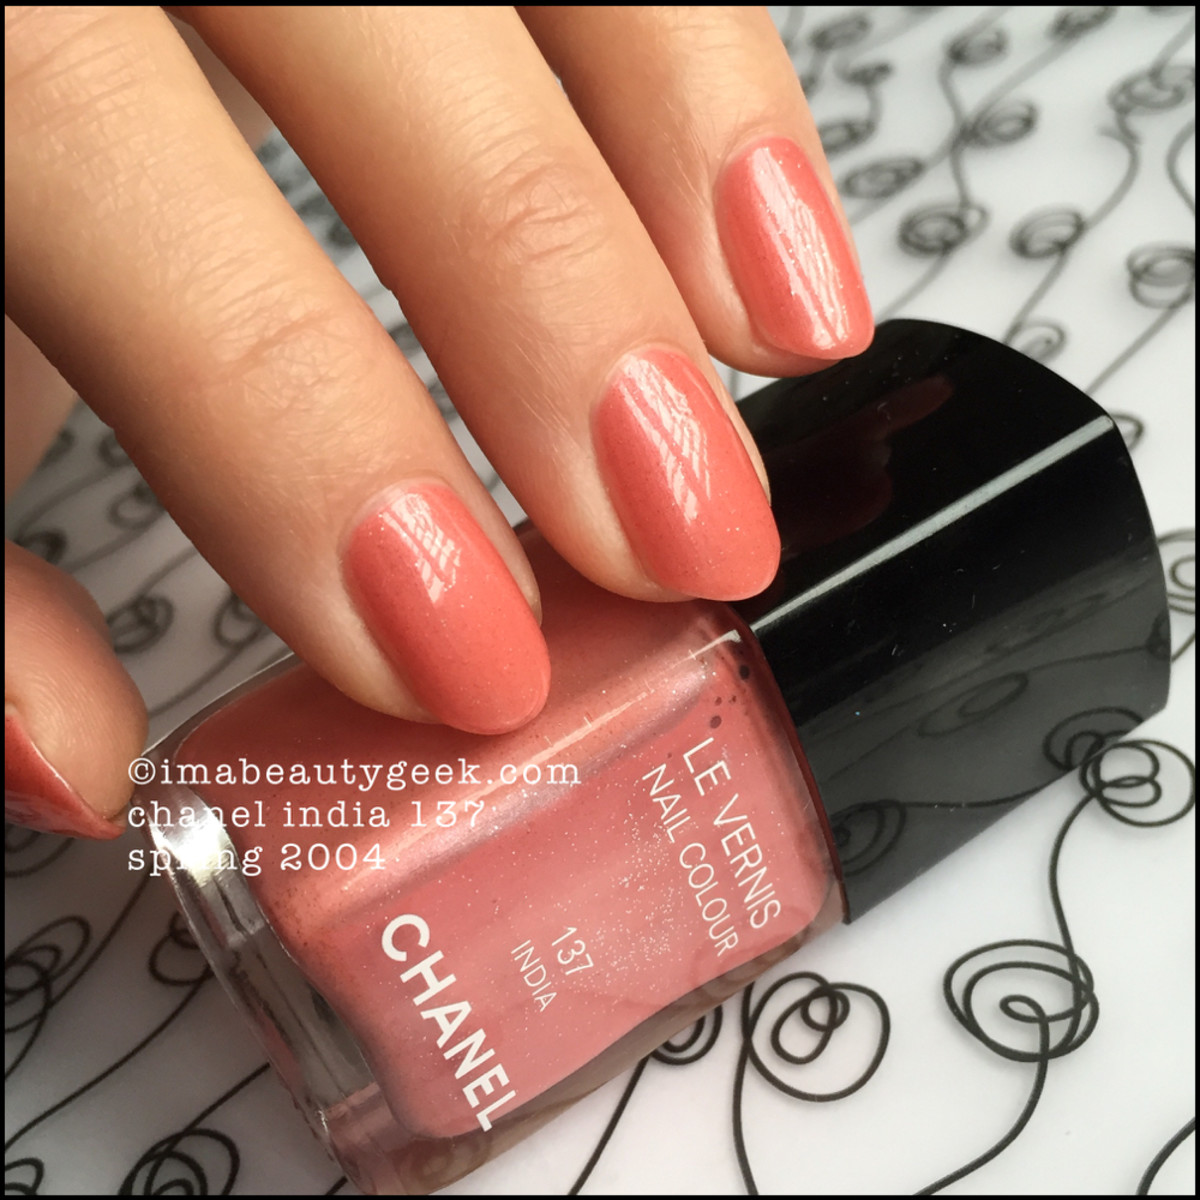 Chanel India 137 Nail Colour Vernis 2004_1